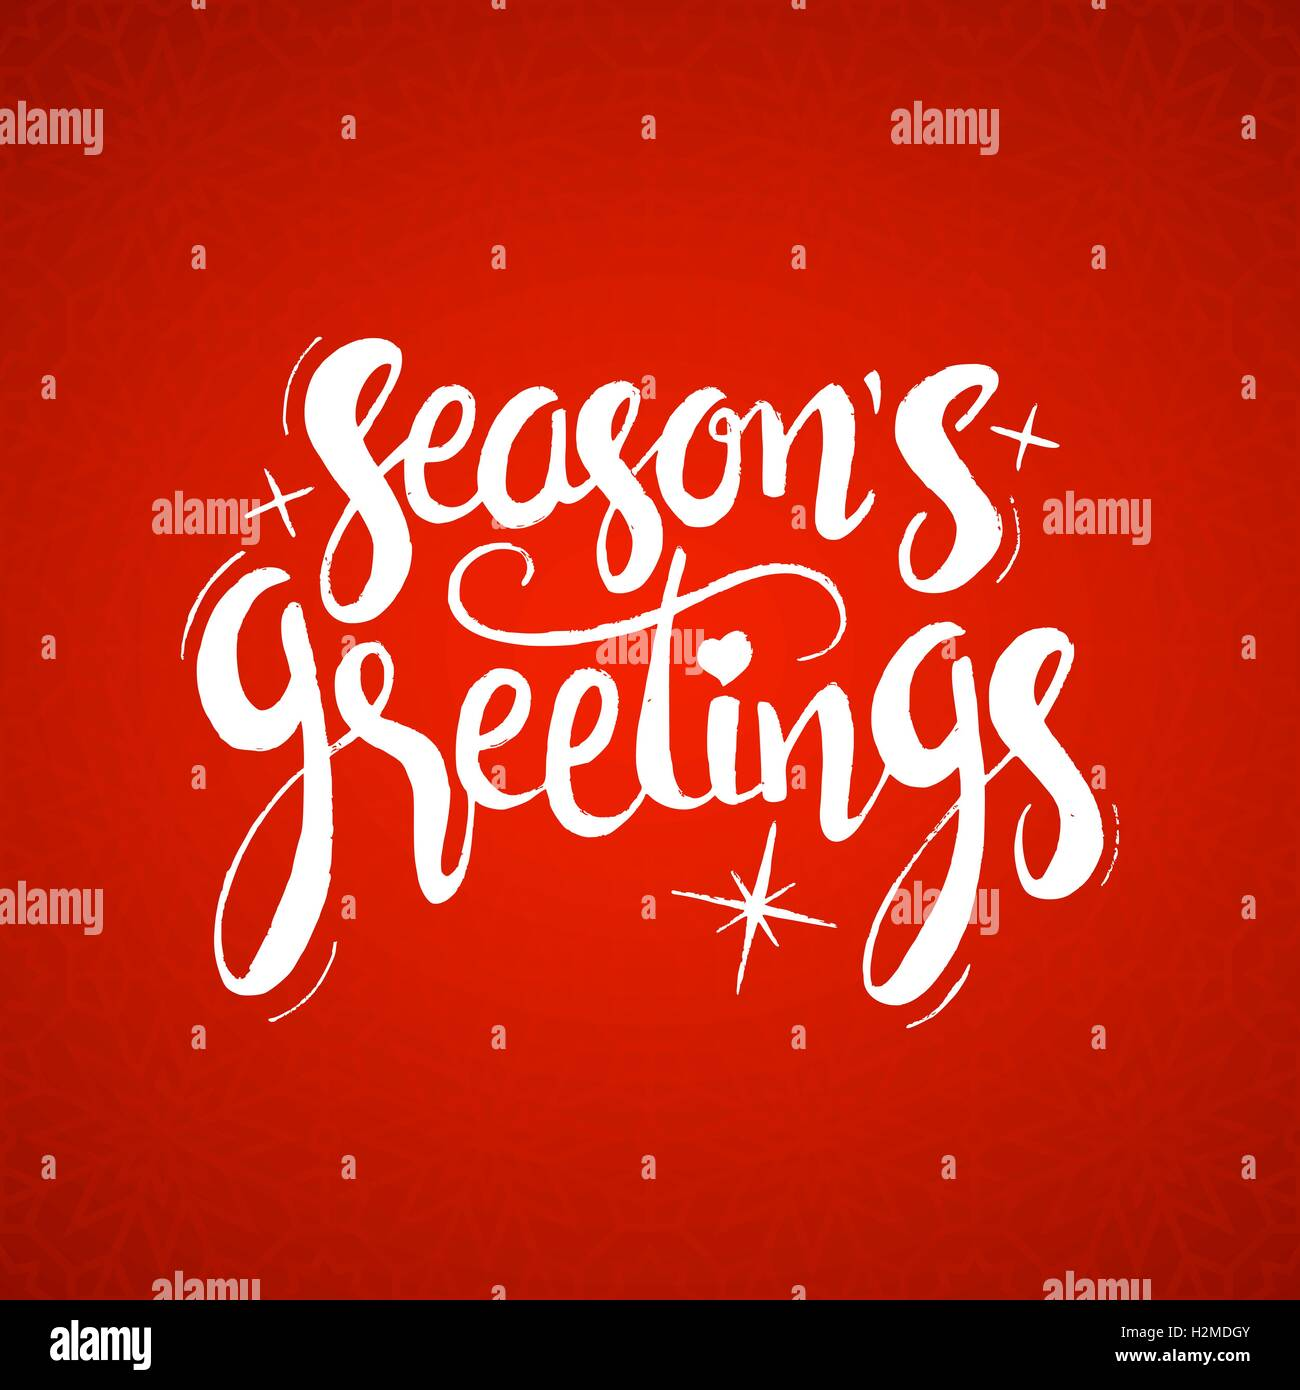 Seasons greetings lettering modern vector hand drawn calligraphy seasons greetings lettering modern vector hand drawn calligraphy over red holiday background for your greeting card design m4hsunfo